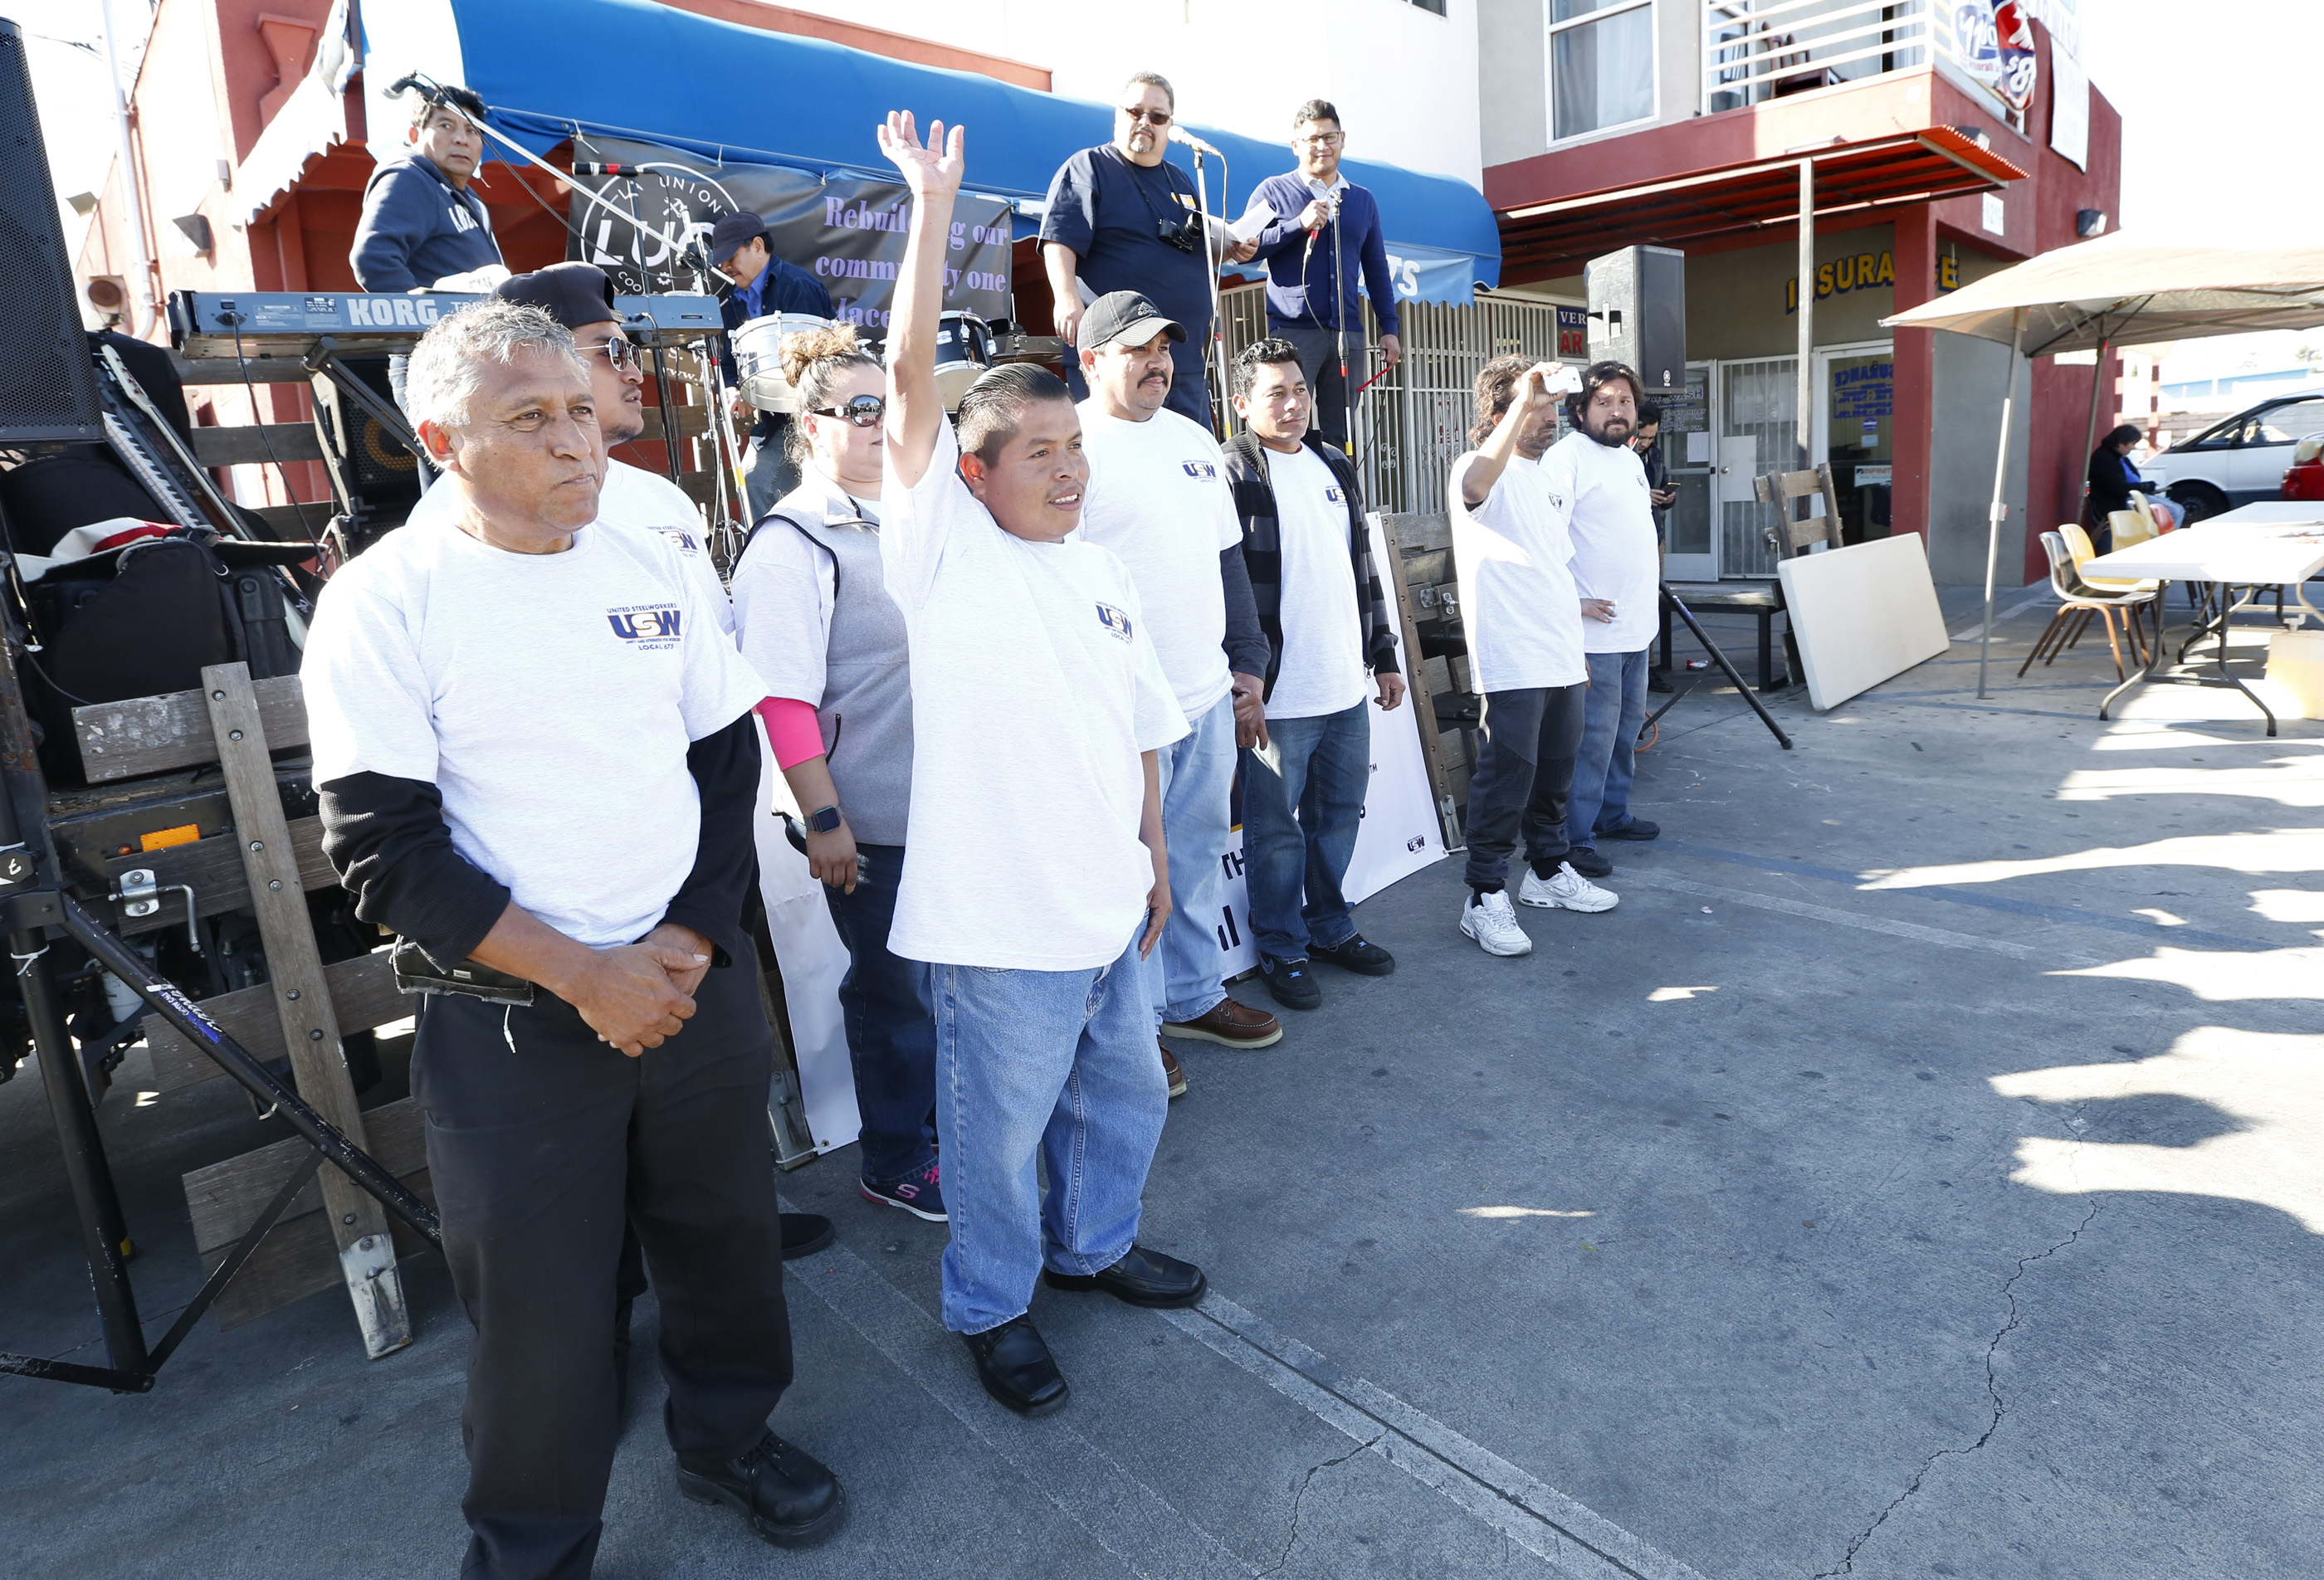 02/22/17 /LOS ANGELES/ Vermont Gage Carwash worker owners celebrate with the community their anniversary and their union contract. The celebration included music from Los Jornaleros del Norte, vendors, merchandise from other local cooperatives, to celebrate the hard working spirit of this unique group of car washeros. (Photo Aurelia Ventura/La Opinion)